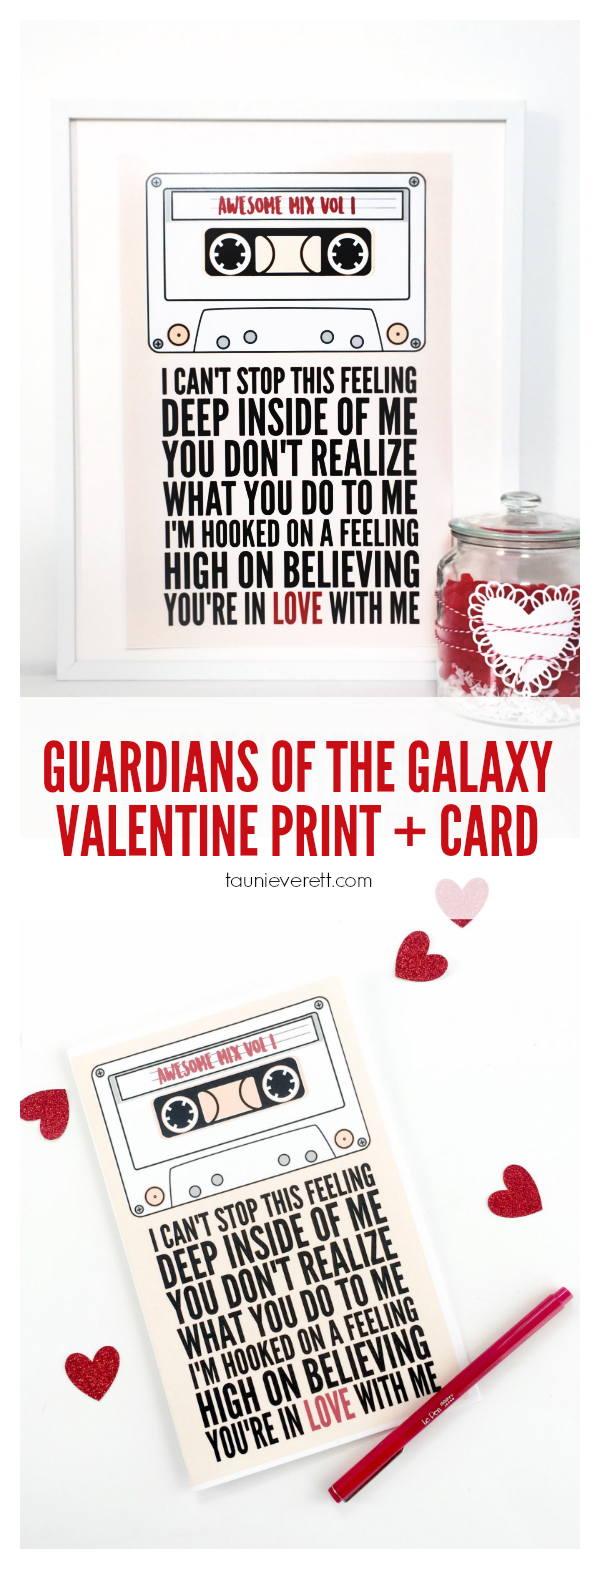 Guardians of the galaxy inspired Valentine print and card. FREE download.